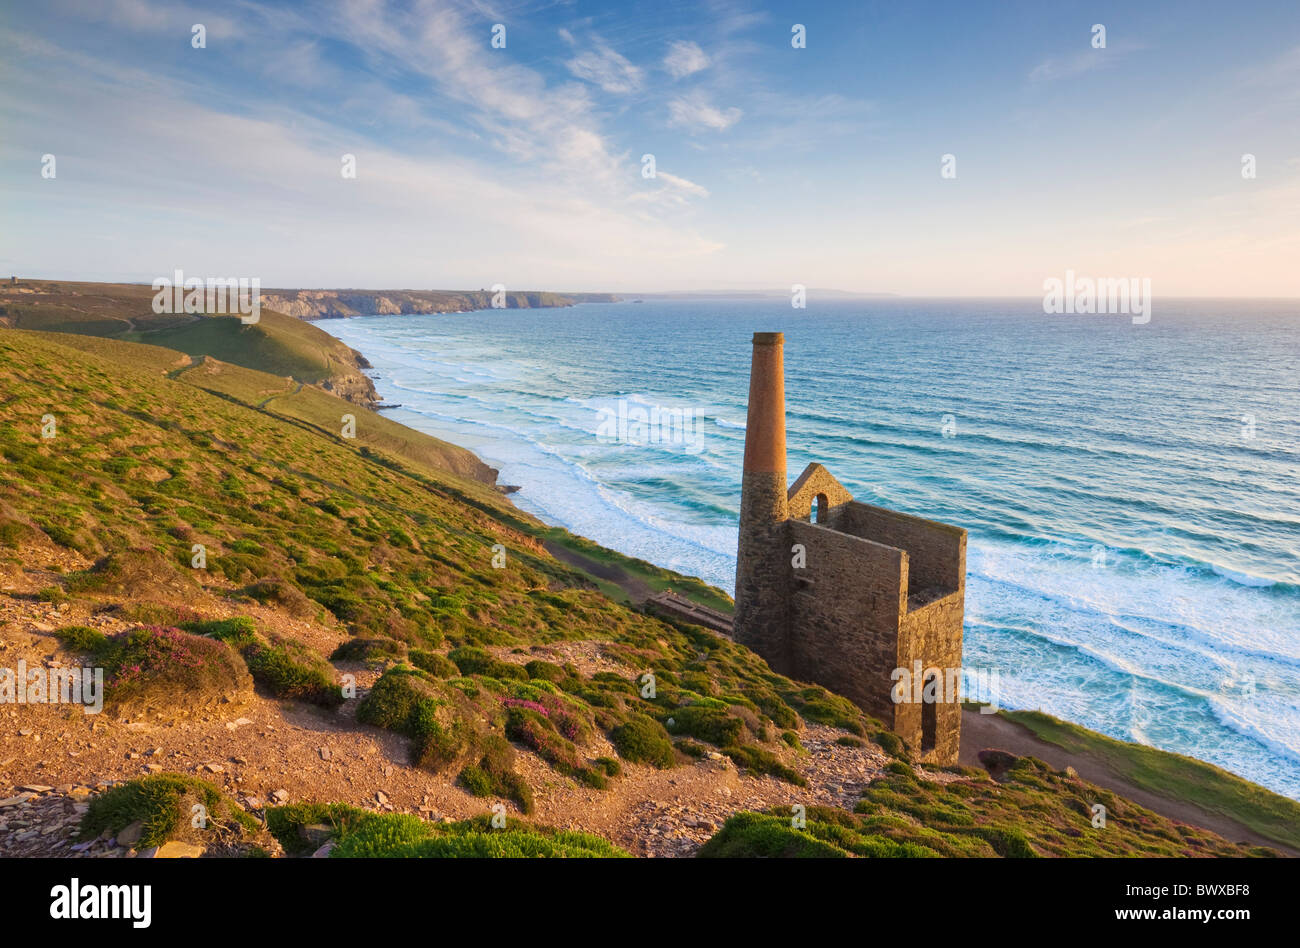 Wheal Coates tin mine near St Agnes North Cornwall coast England GB UK EU Europe - Stock Image